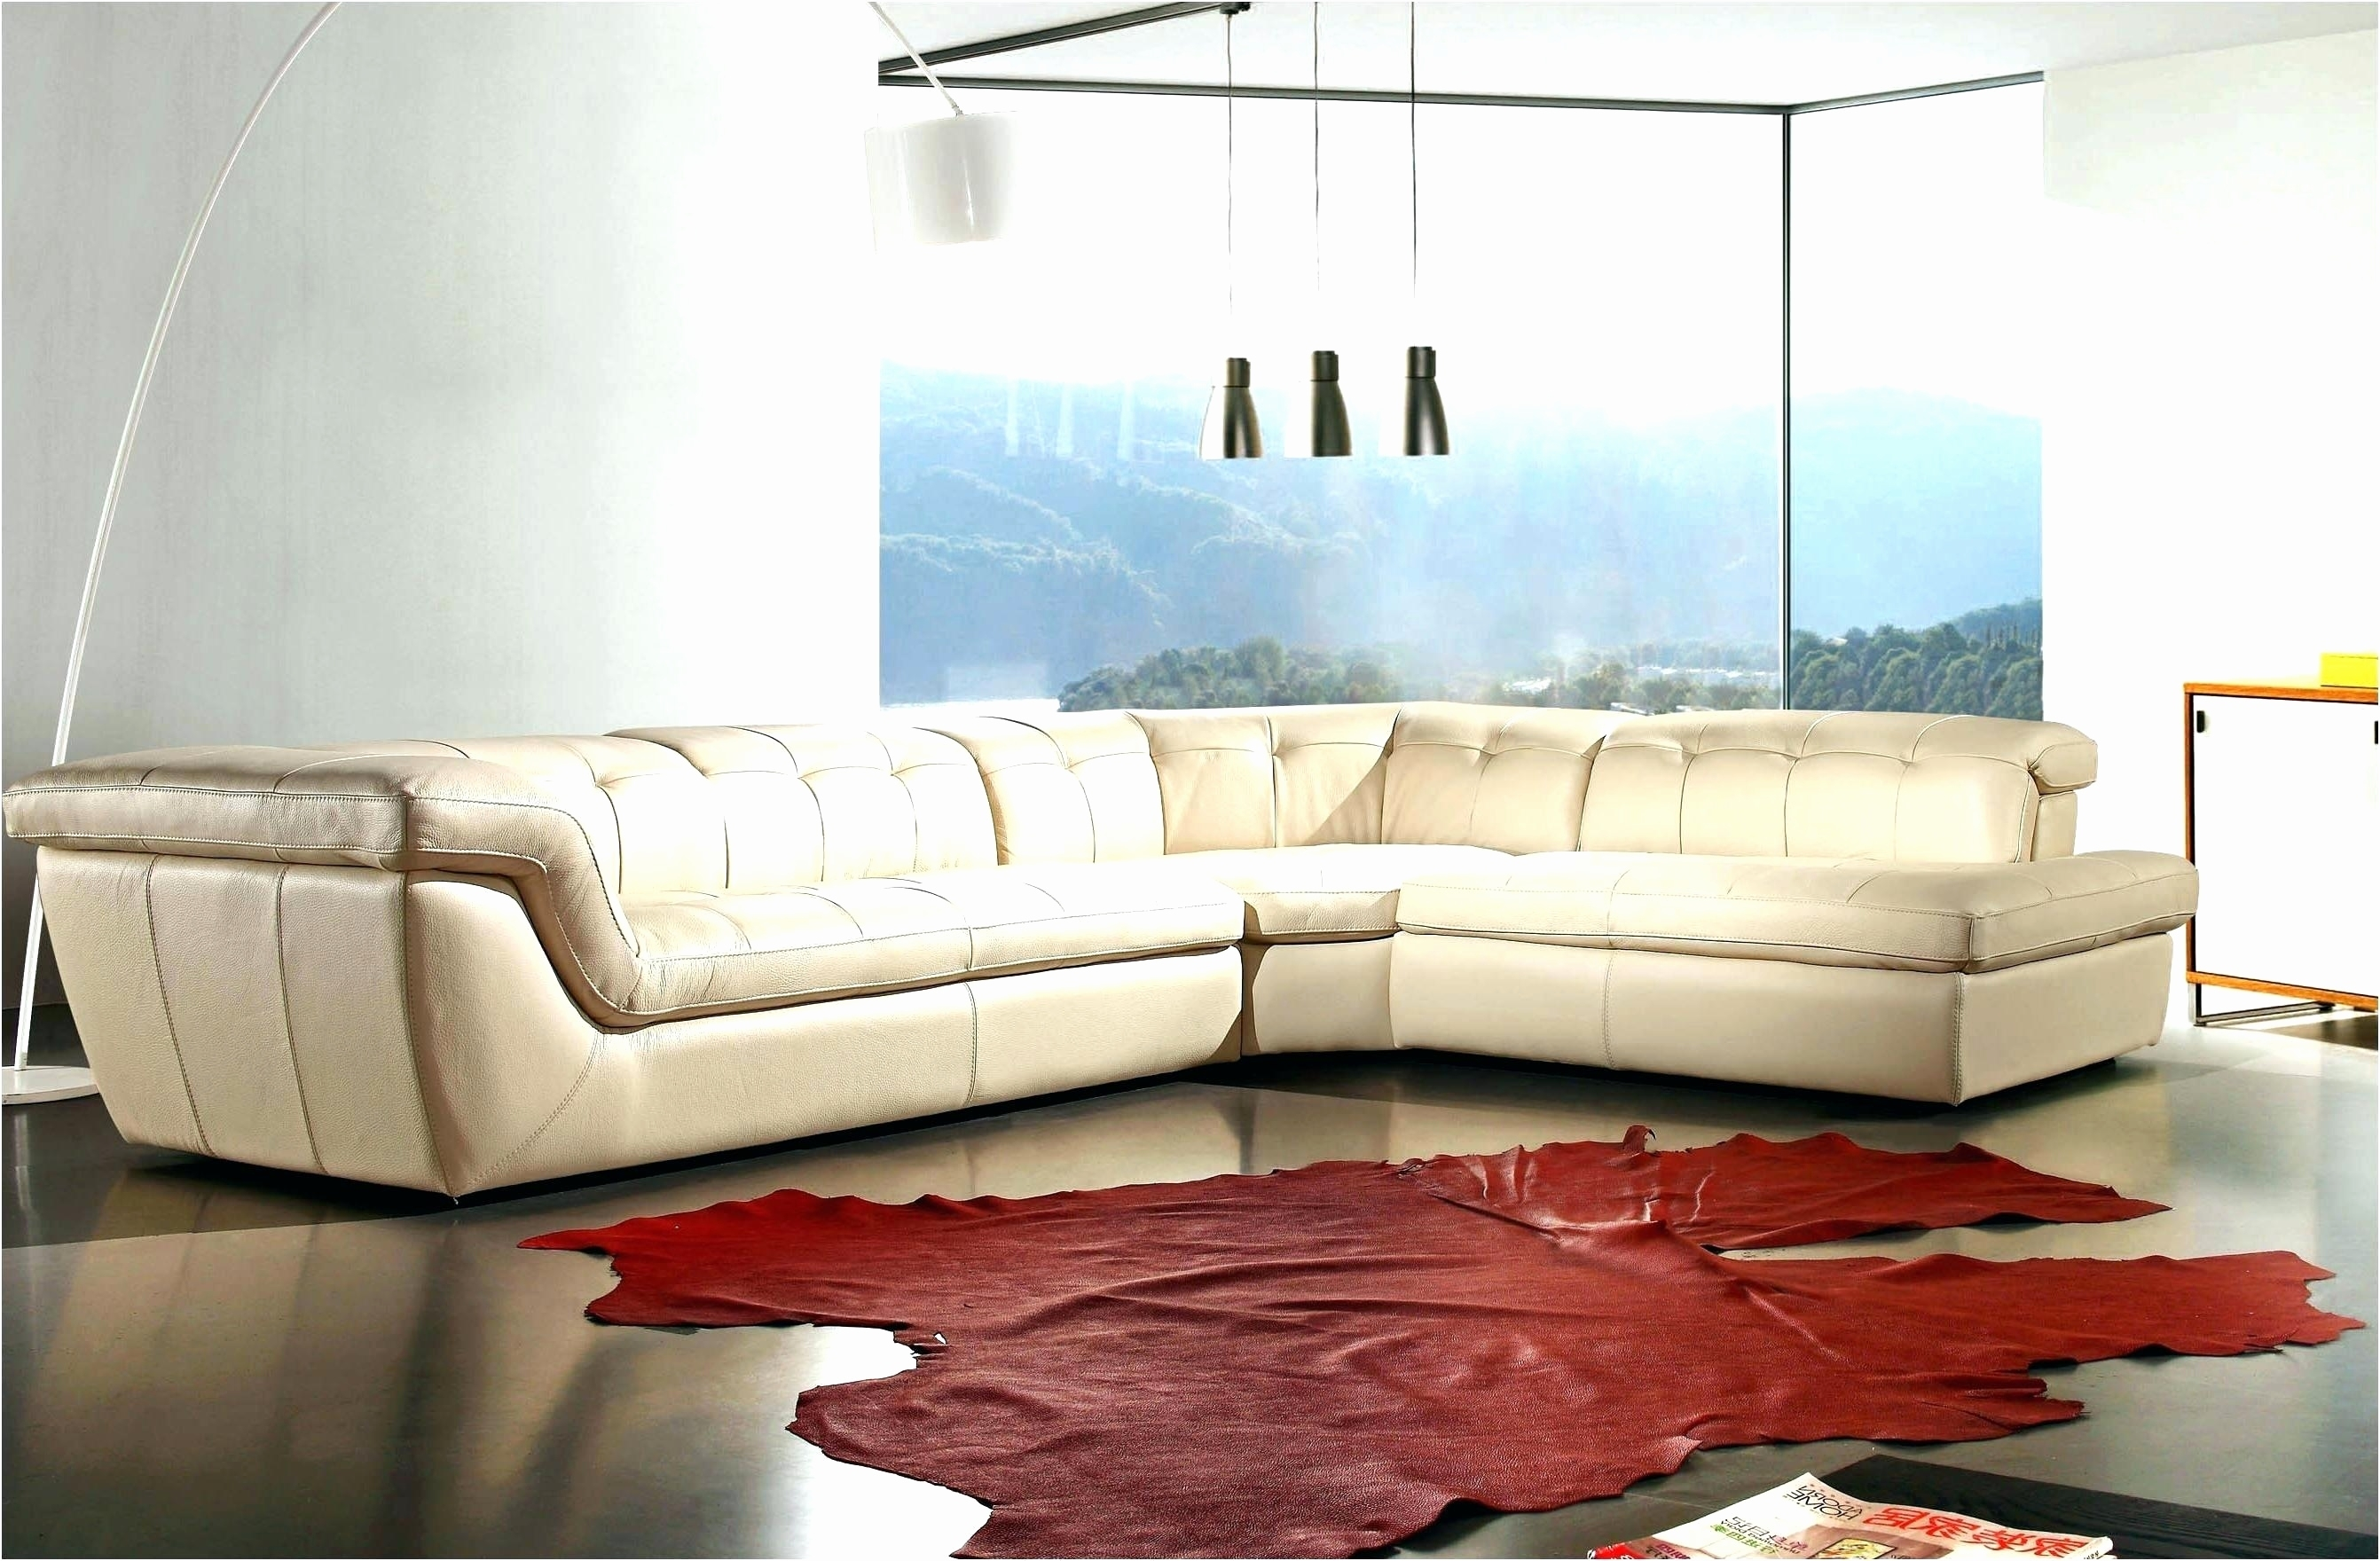 Fresh 6 Piece Microfiber Sectional Sofa 2018 – Couches And Sofas Ideas Throughout 6 Piece Leather Sectional Sofas (Image 5 of 10)